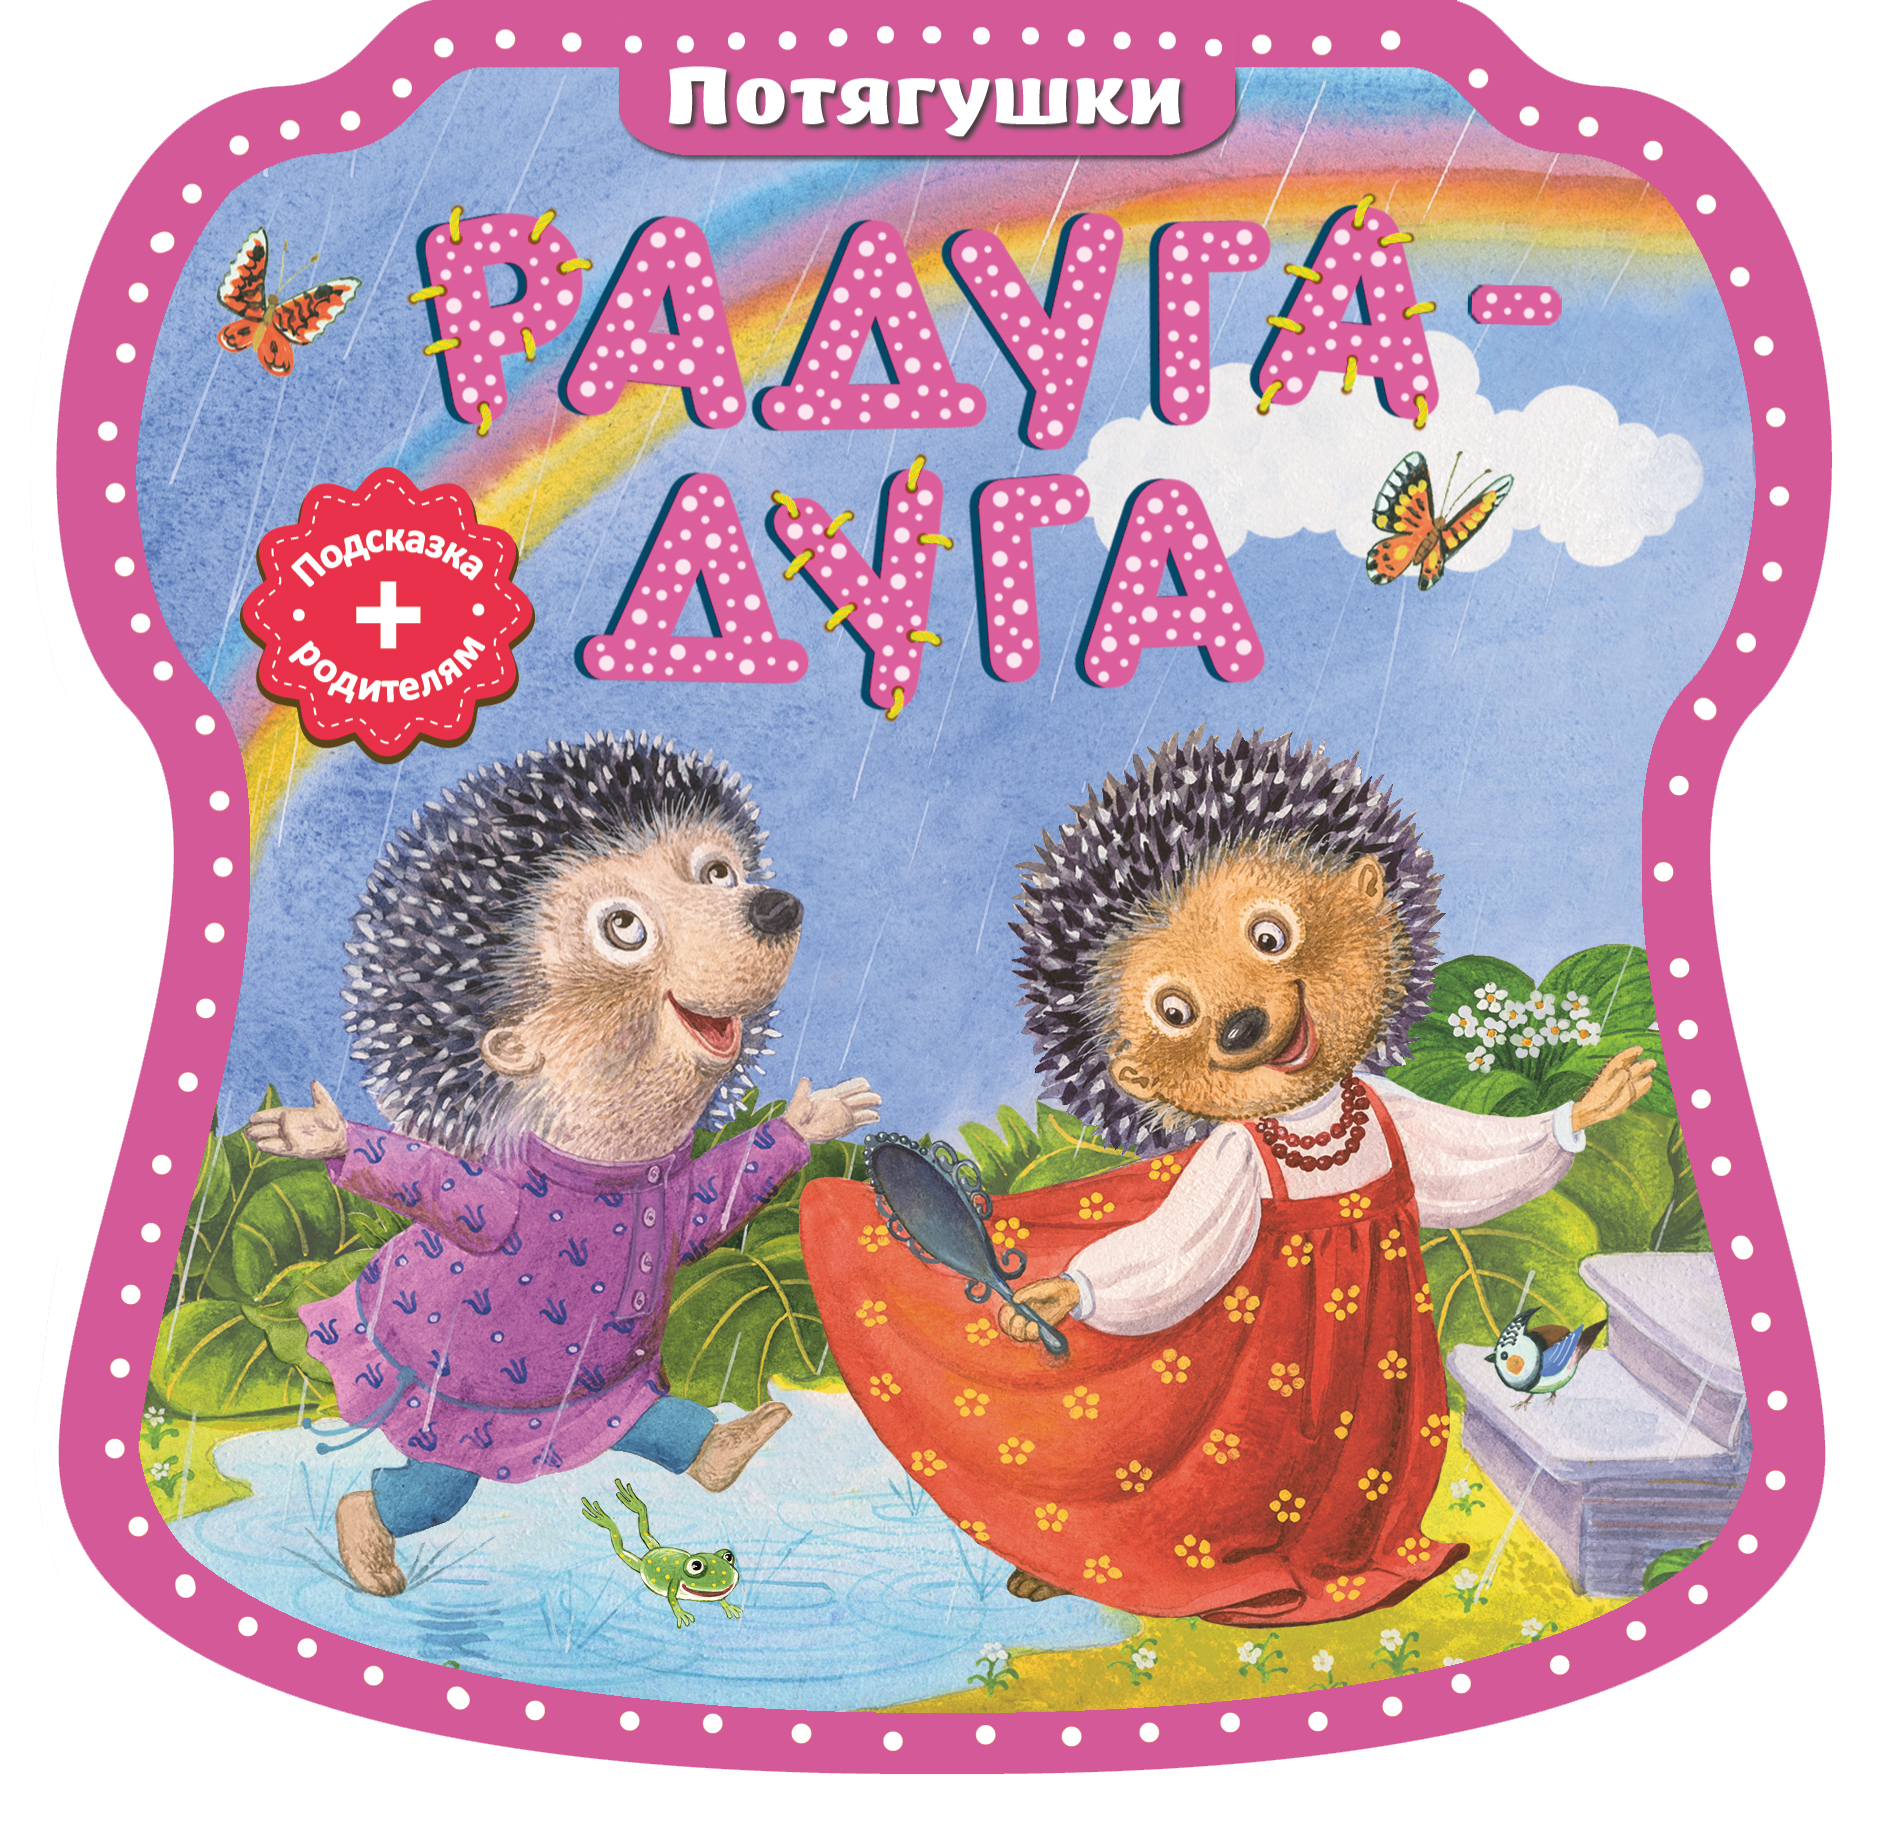 Pestushki and nursery rhymes for your kids